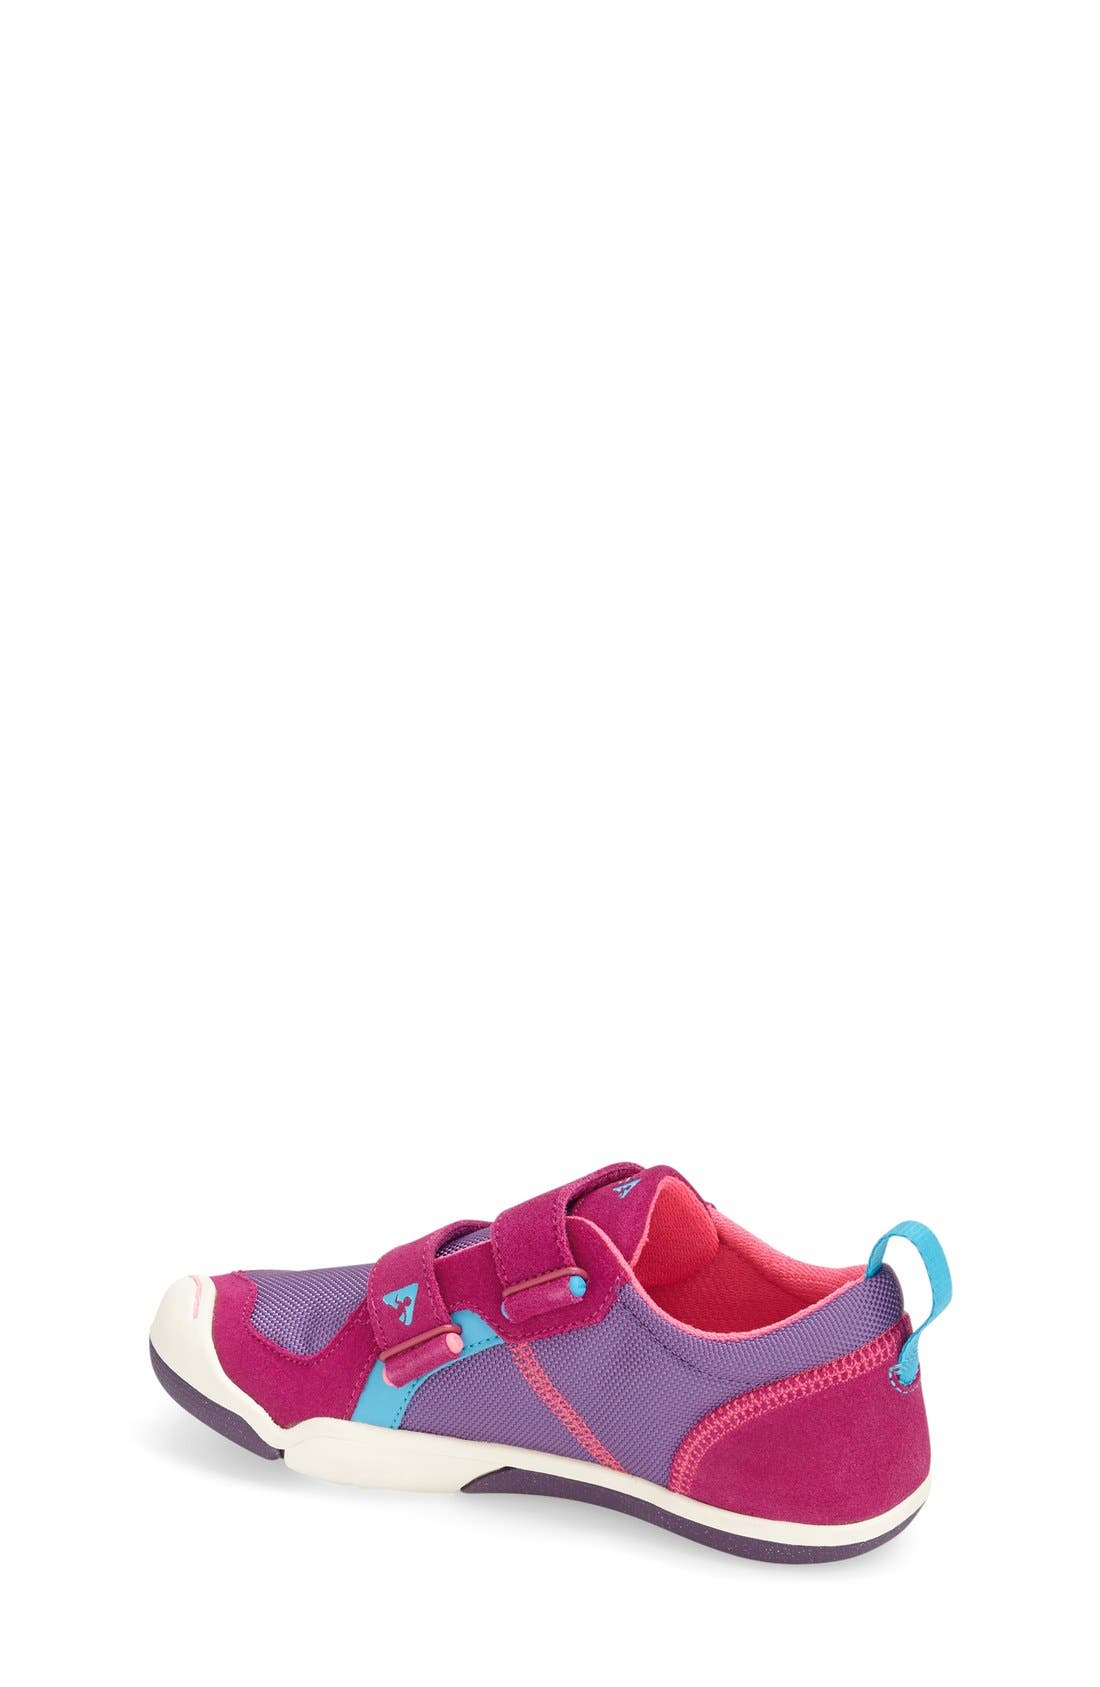 'Ty' Customizable Sneaker,                             Alternate thumbnail 4, color,                             FUCHSIA/ PURPLE